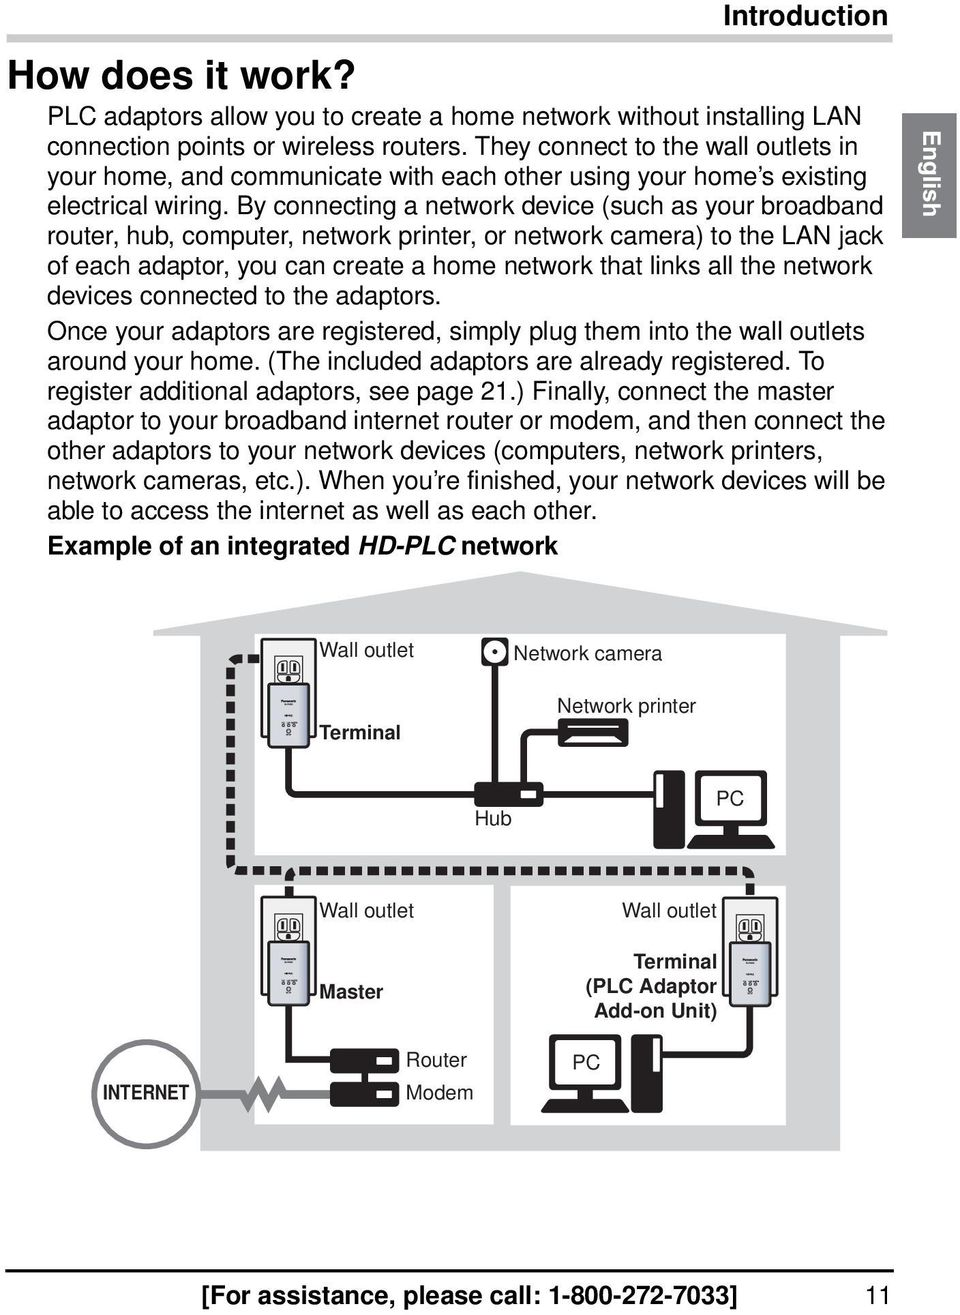 By connecting a network device (such as your broadband router, hub, computer, network printer, or network camera) to the LAN jack of each adaptor, you can create a home network that links all the